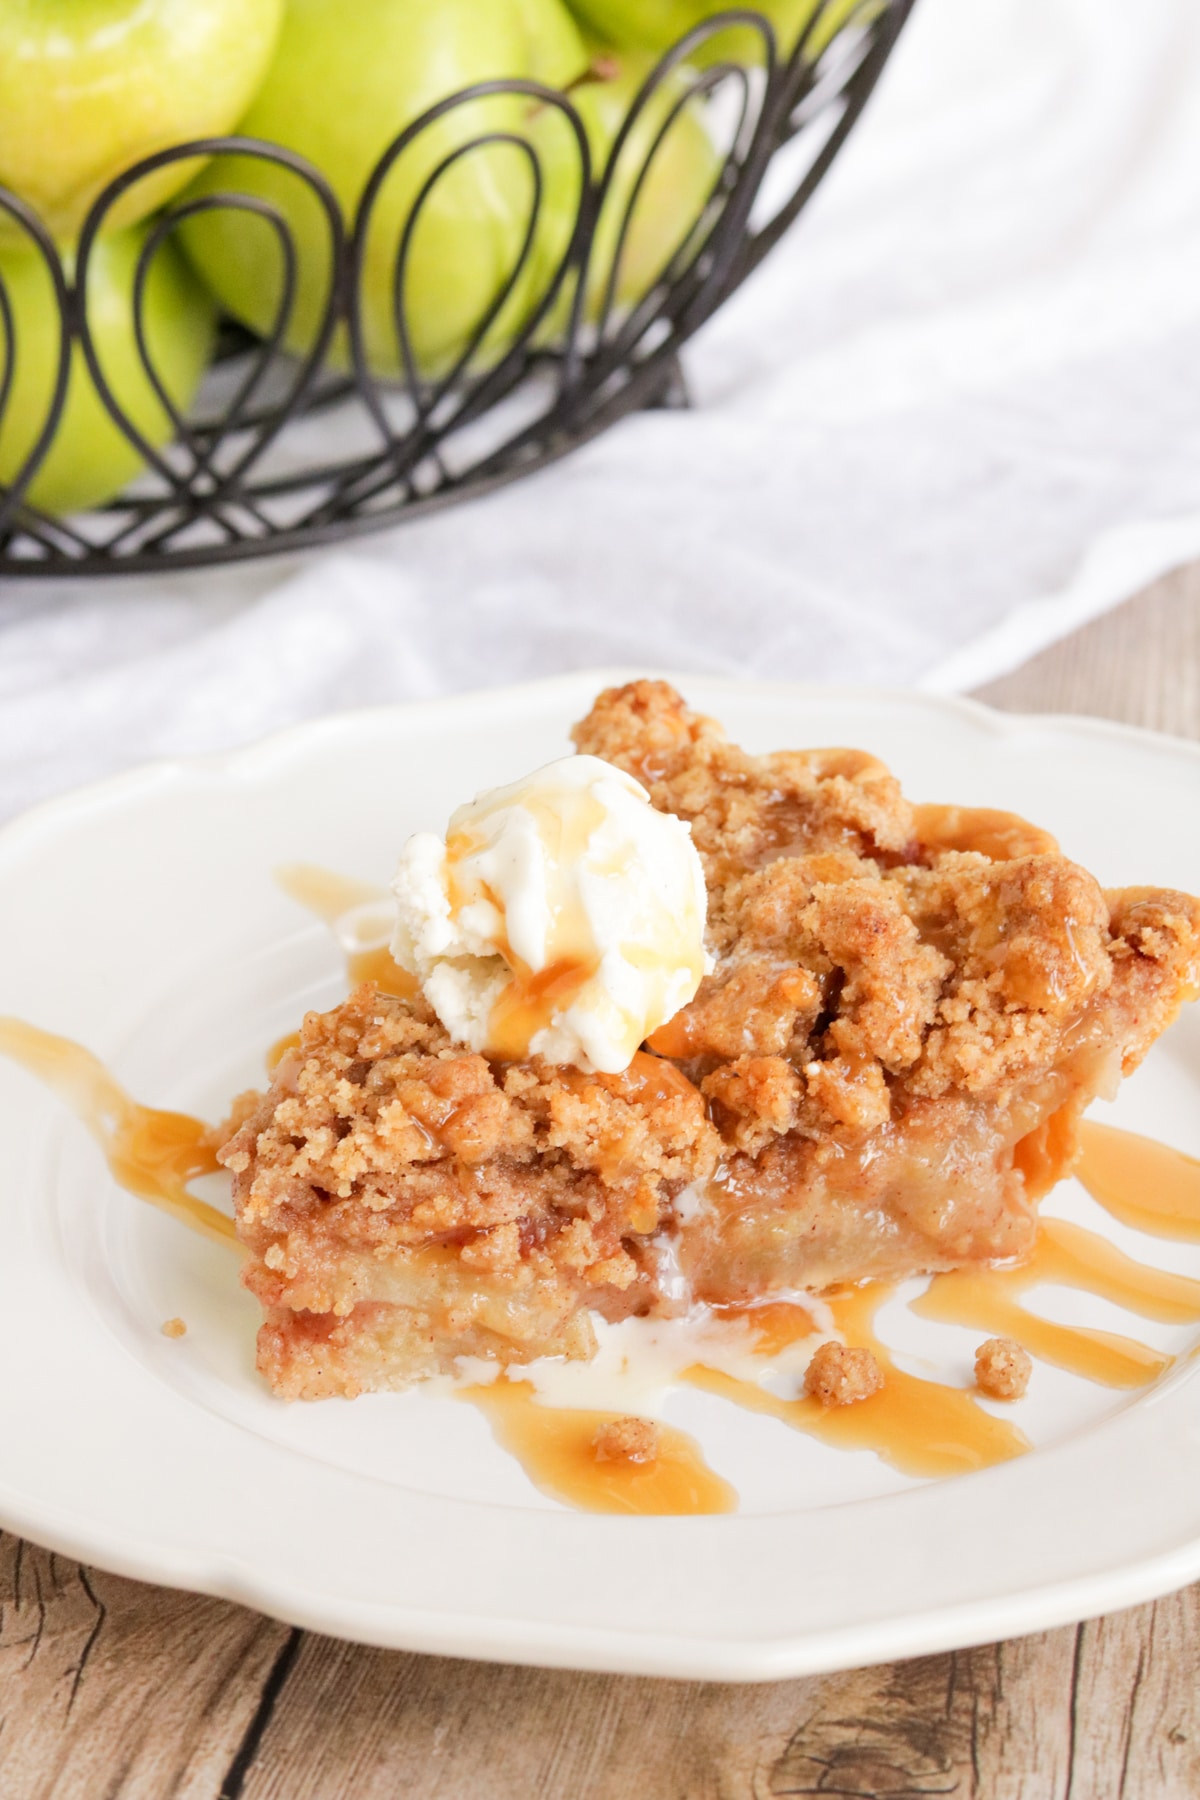 Apple Crumble Pie- a peice of apple crumble pie on a white plate with ice cream and caramel on top.